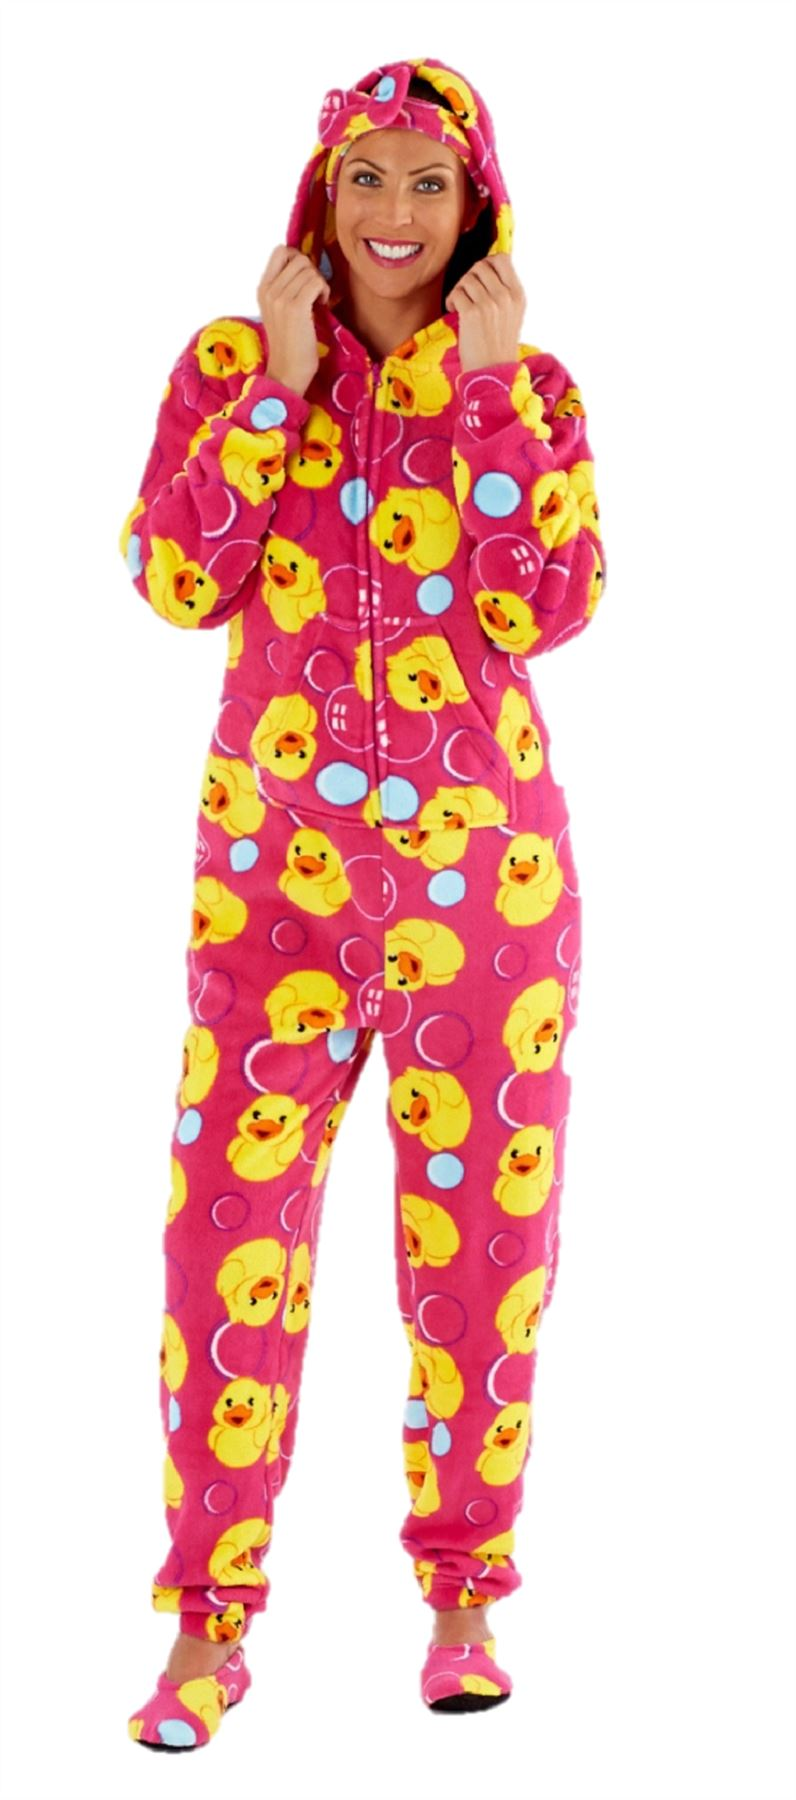 ladies fleece onesie pyjamas one piece pajama free matching headband slippers ebay. Black Bedroom Furniture Sets. Home Design Ideas